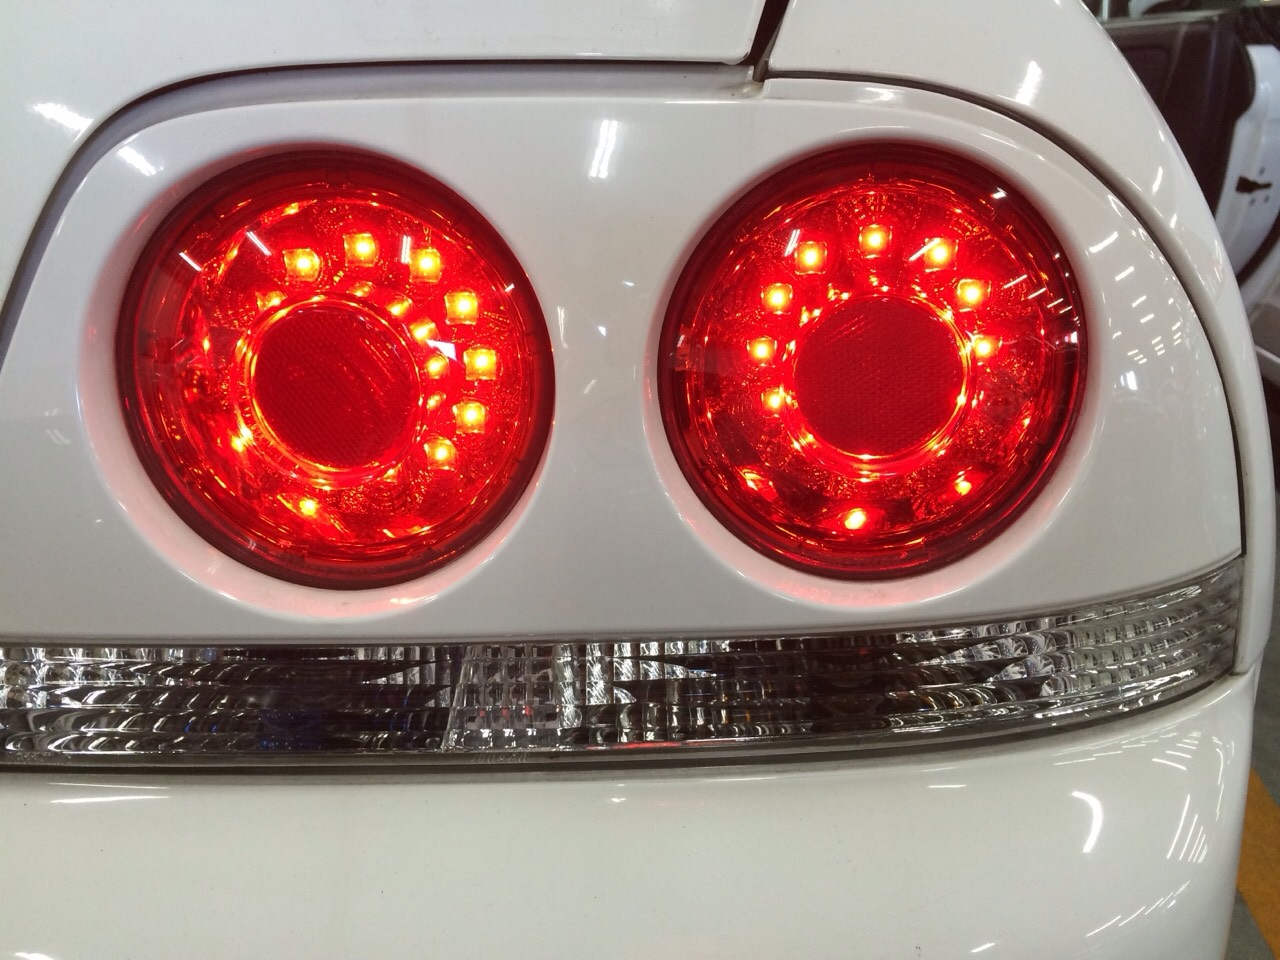 1995 Nissan Skyline R33 GTR VSpec tail lights